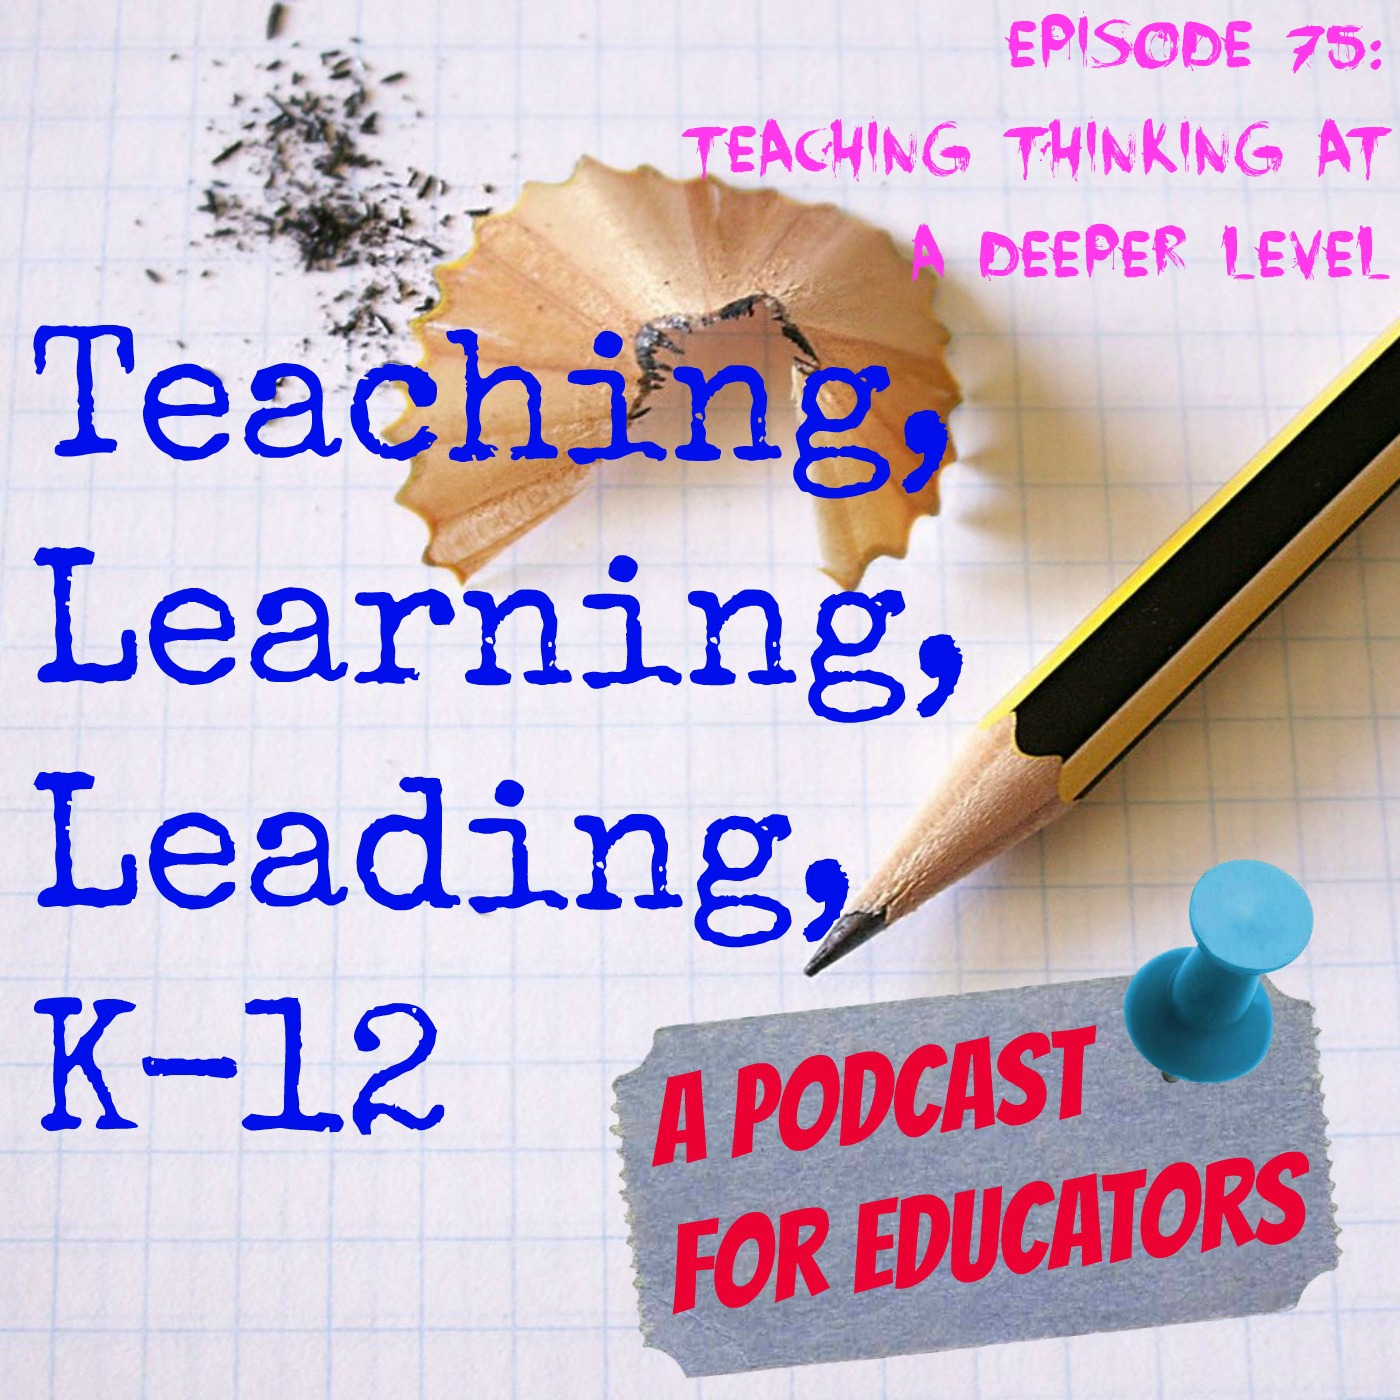 Episode 75: Teaching Thinking at a Deeper Level